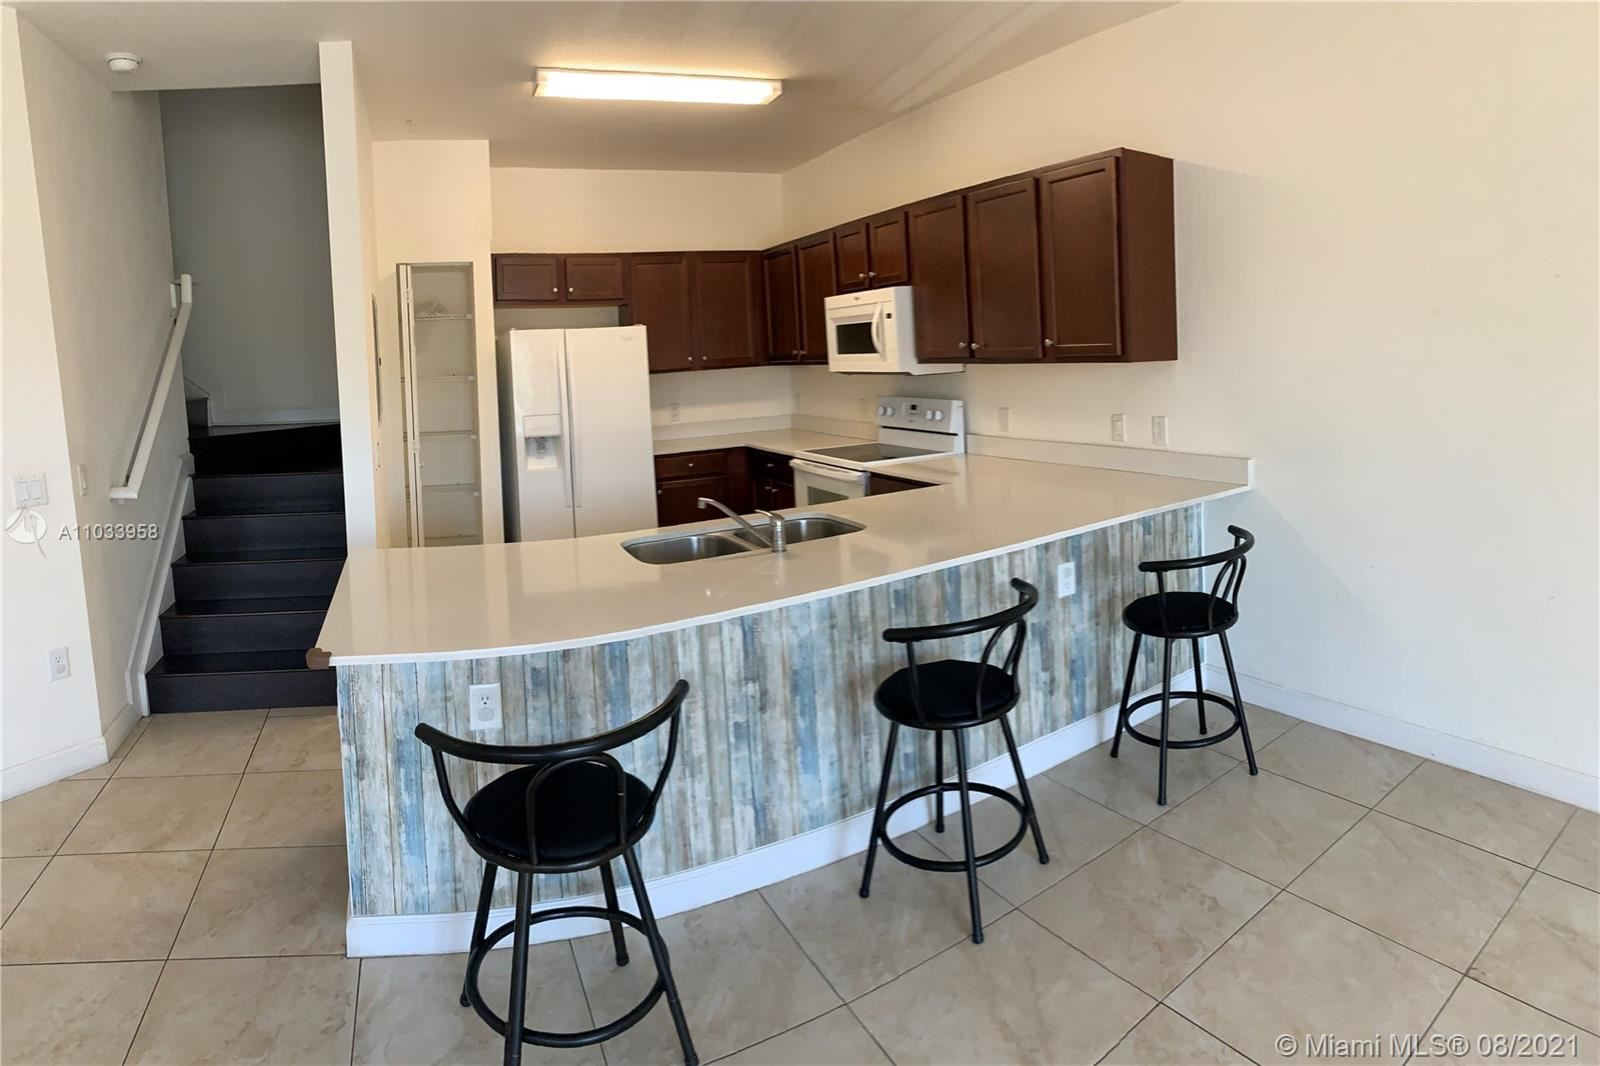 260 NW 109 AVE #212, Sweetwater, FL 33172 - #: A11033958